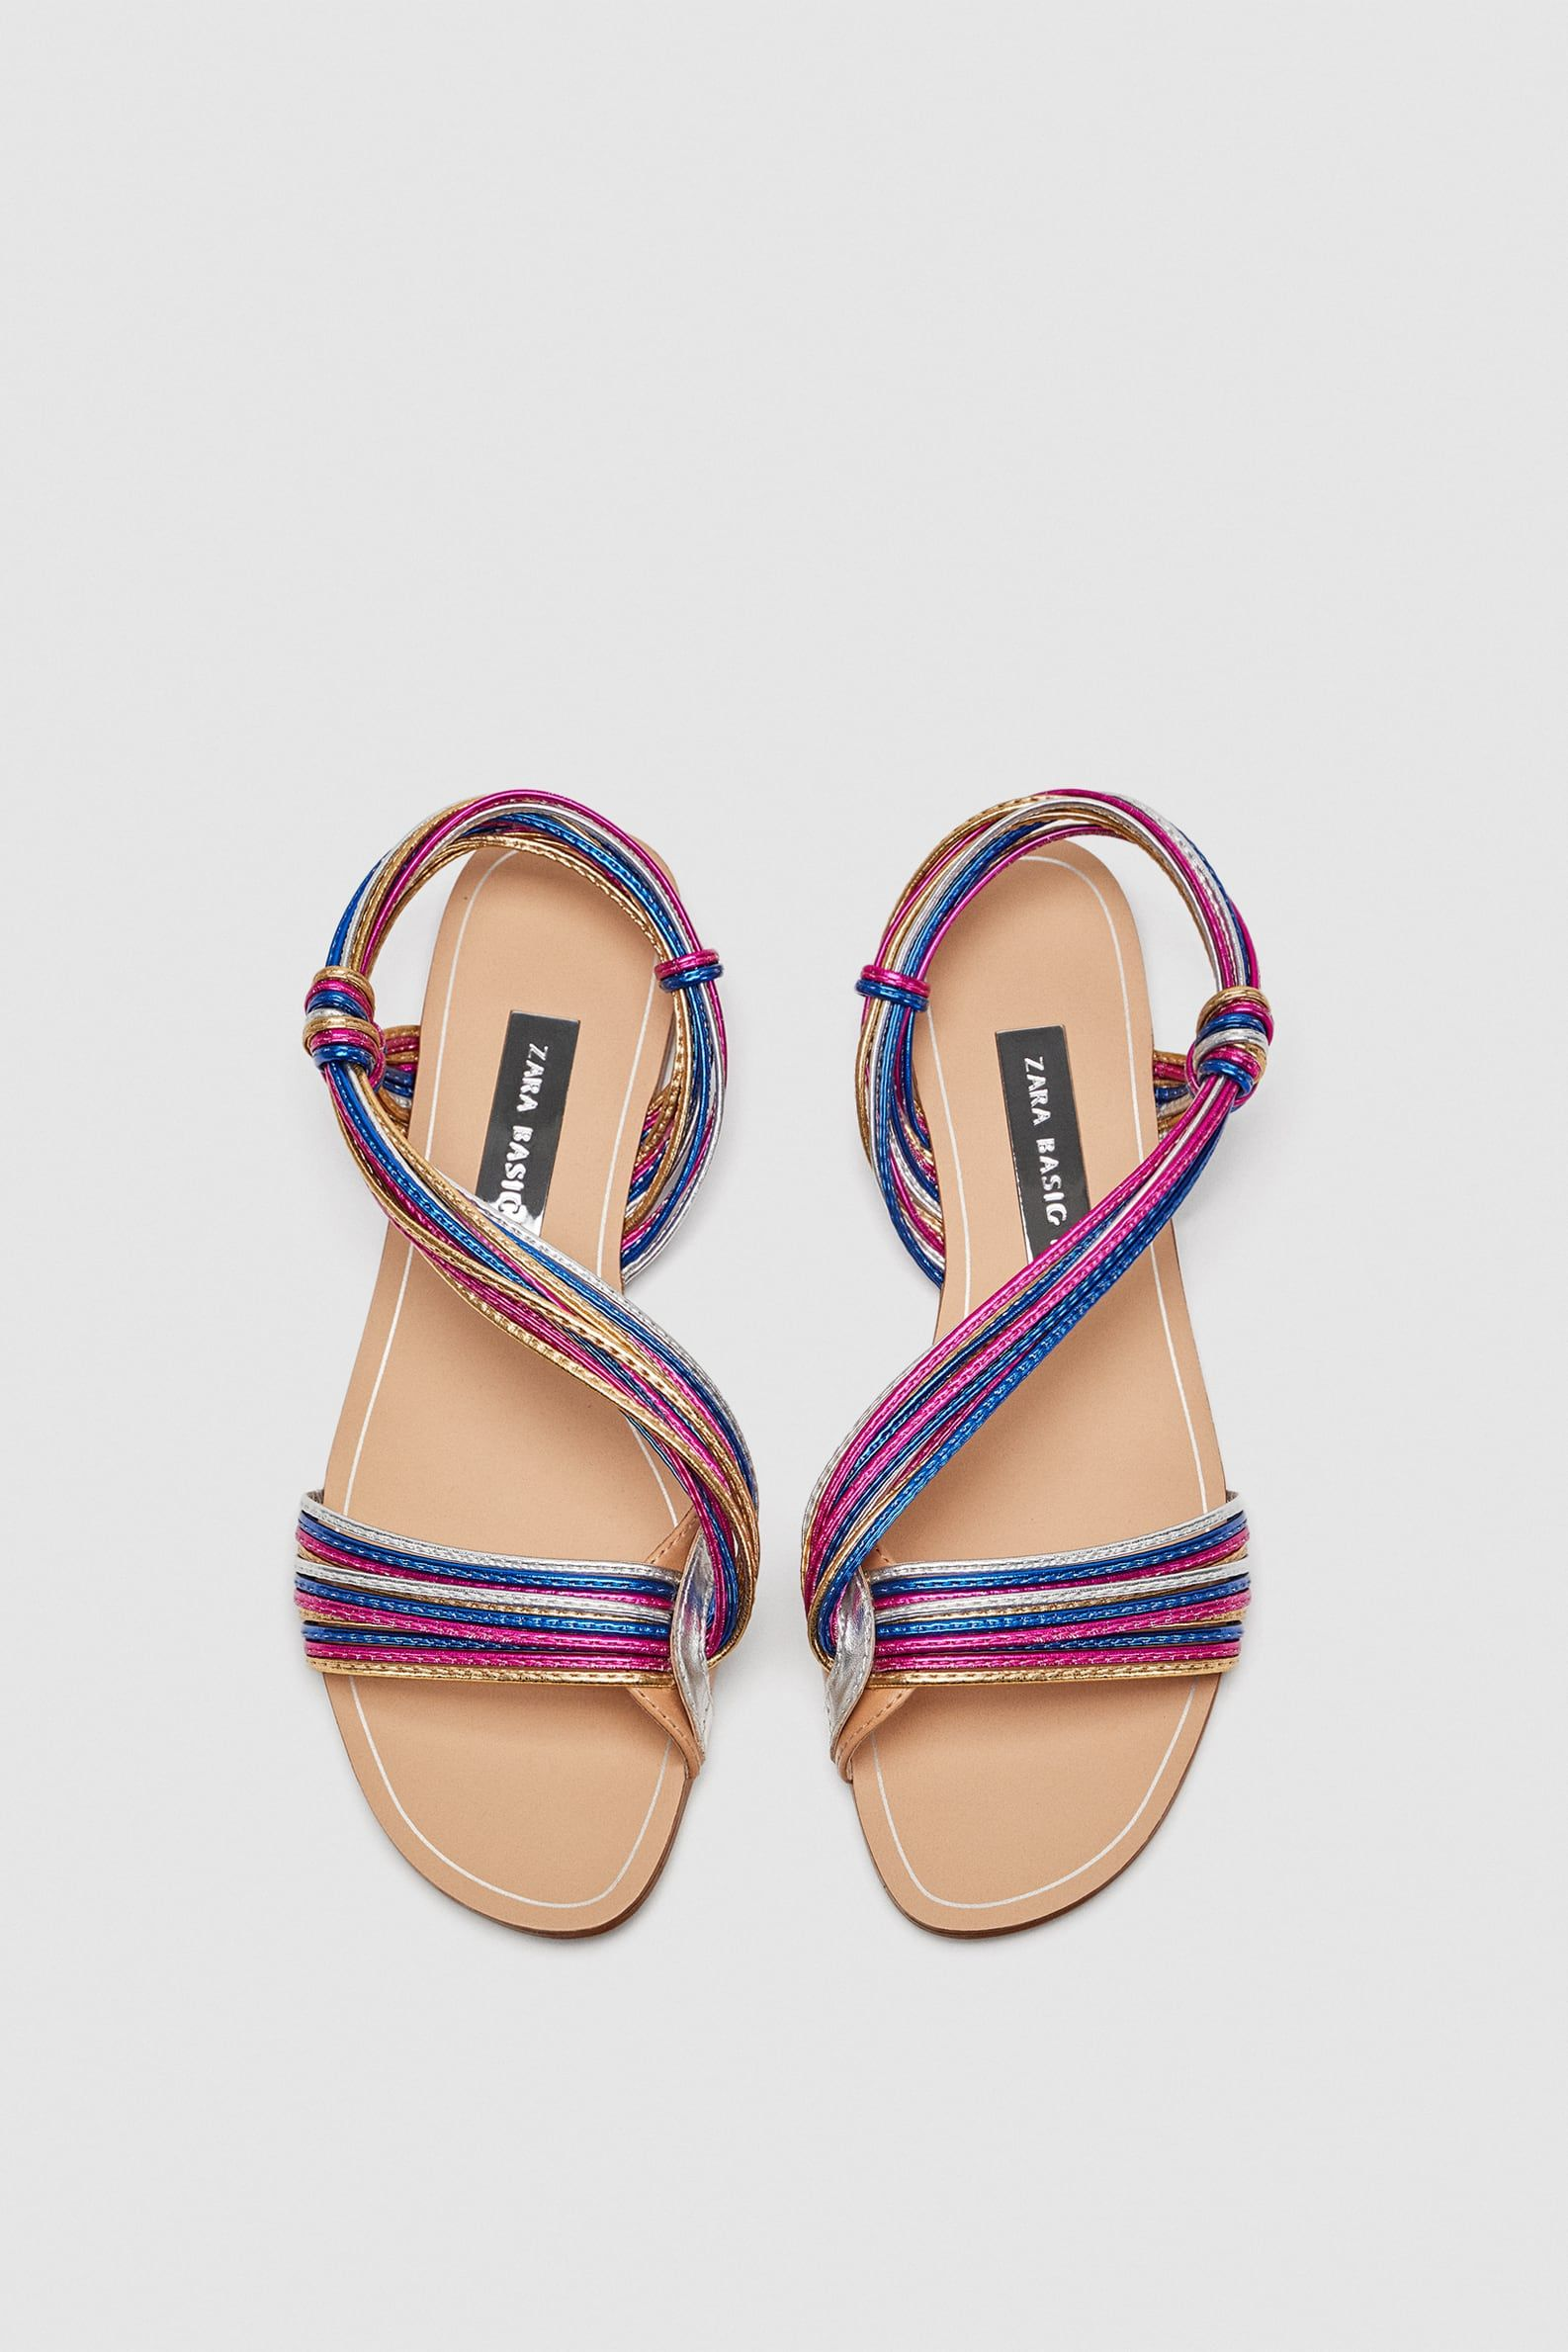 ff1540aba These are amazing Strap Sandals